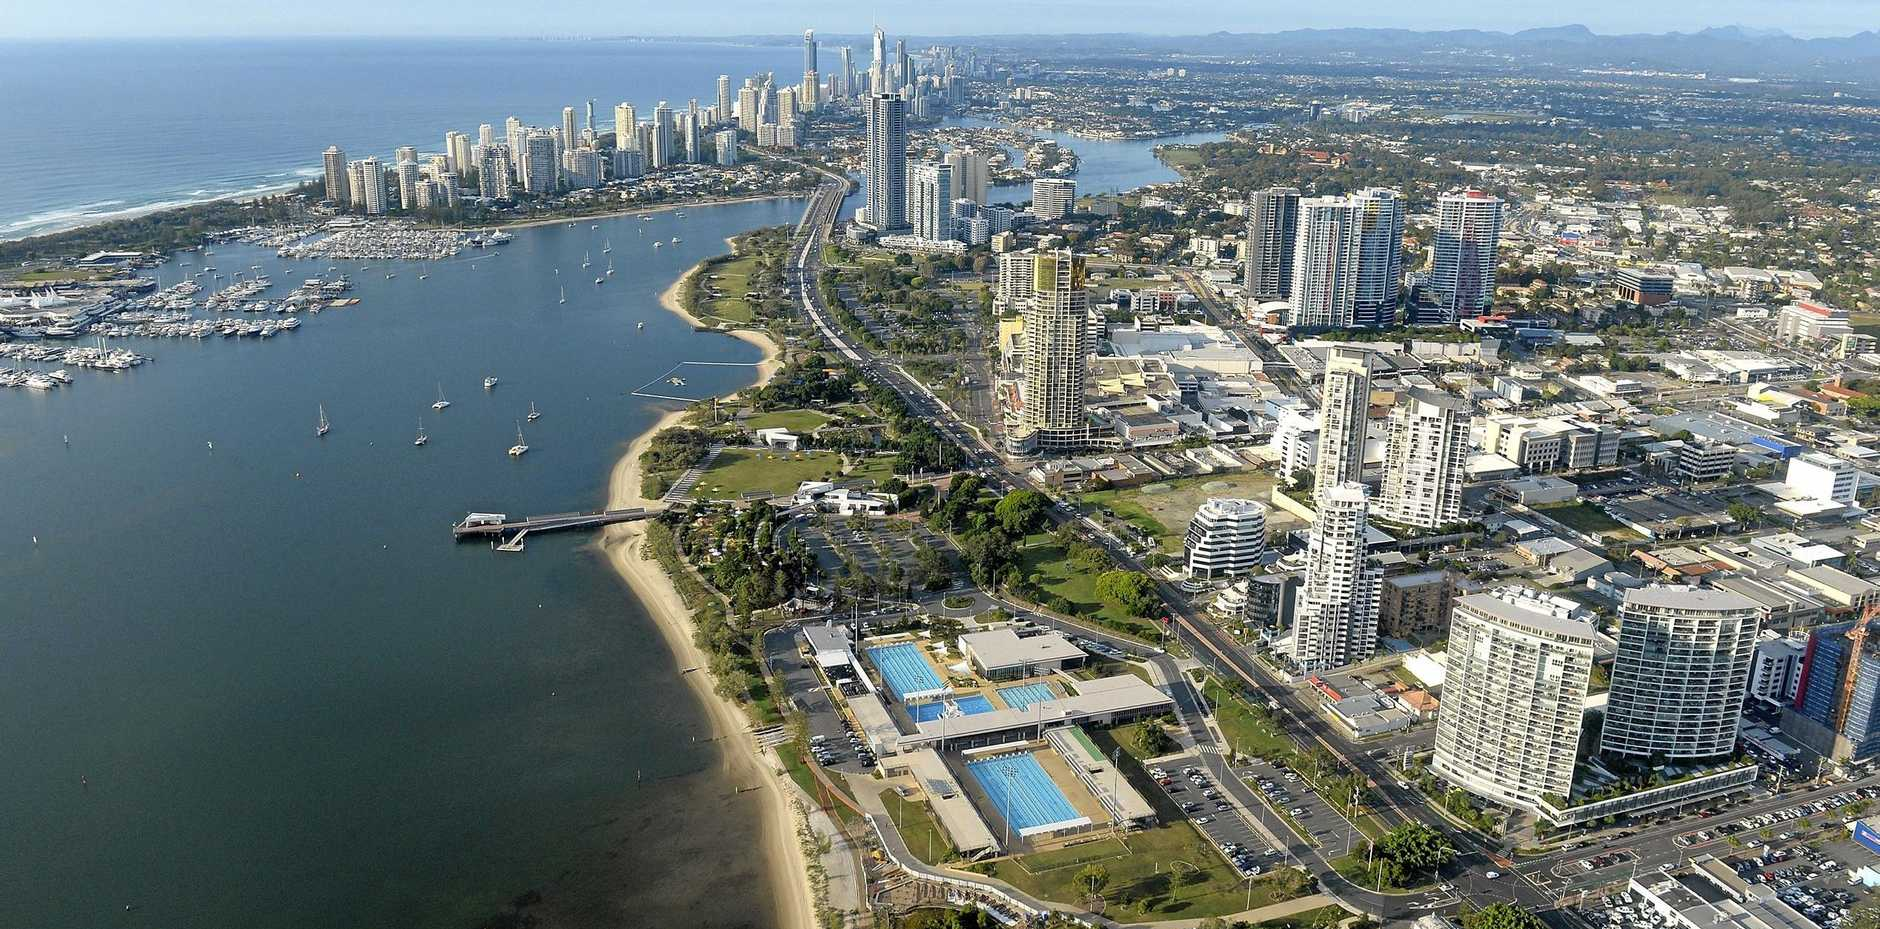 The Gold Coast will host the 2018 Commonwealth Games in April, and traffic on the Pacific Highway is predicted to be congested.